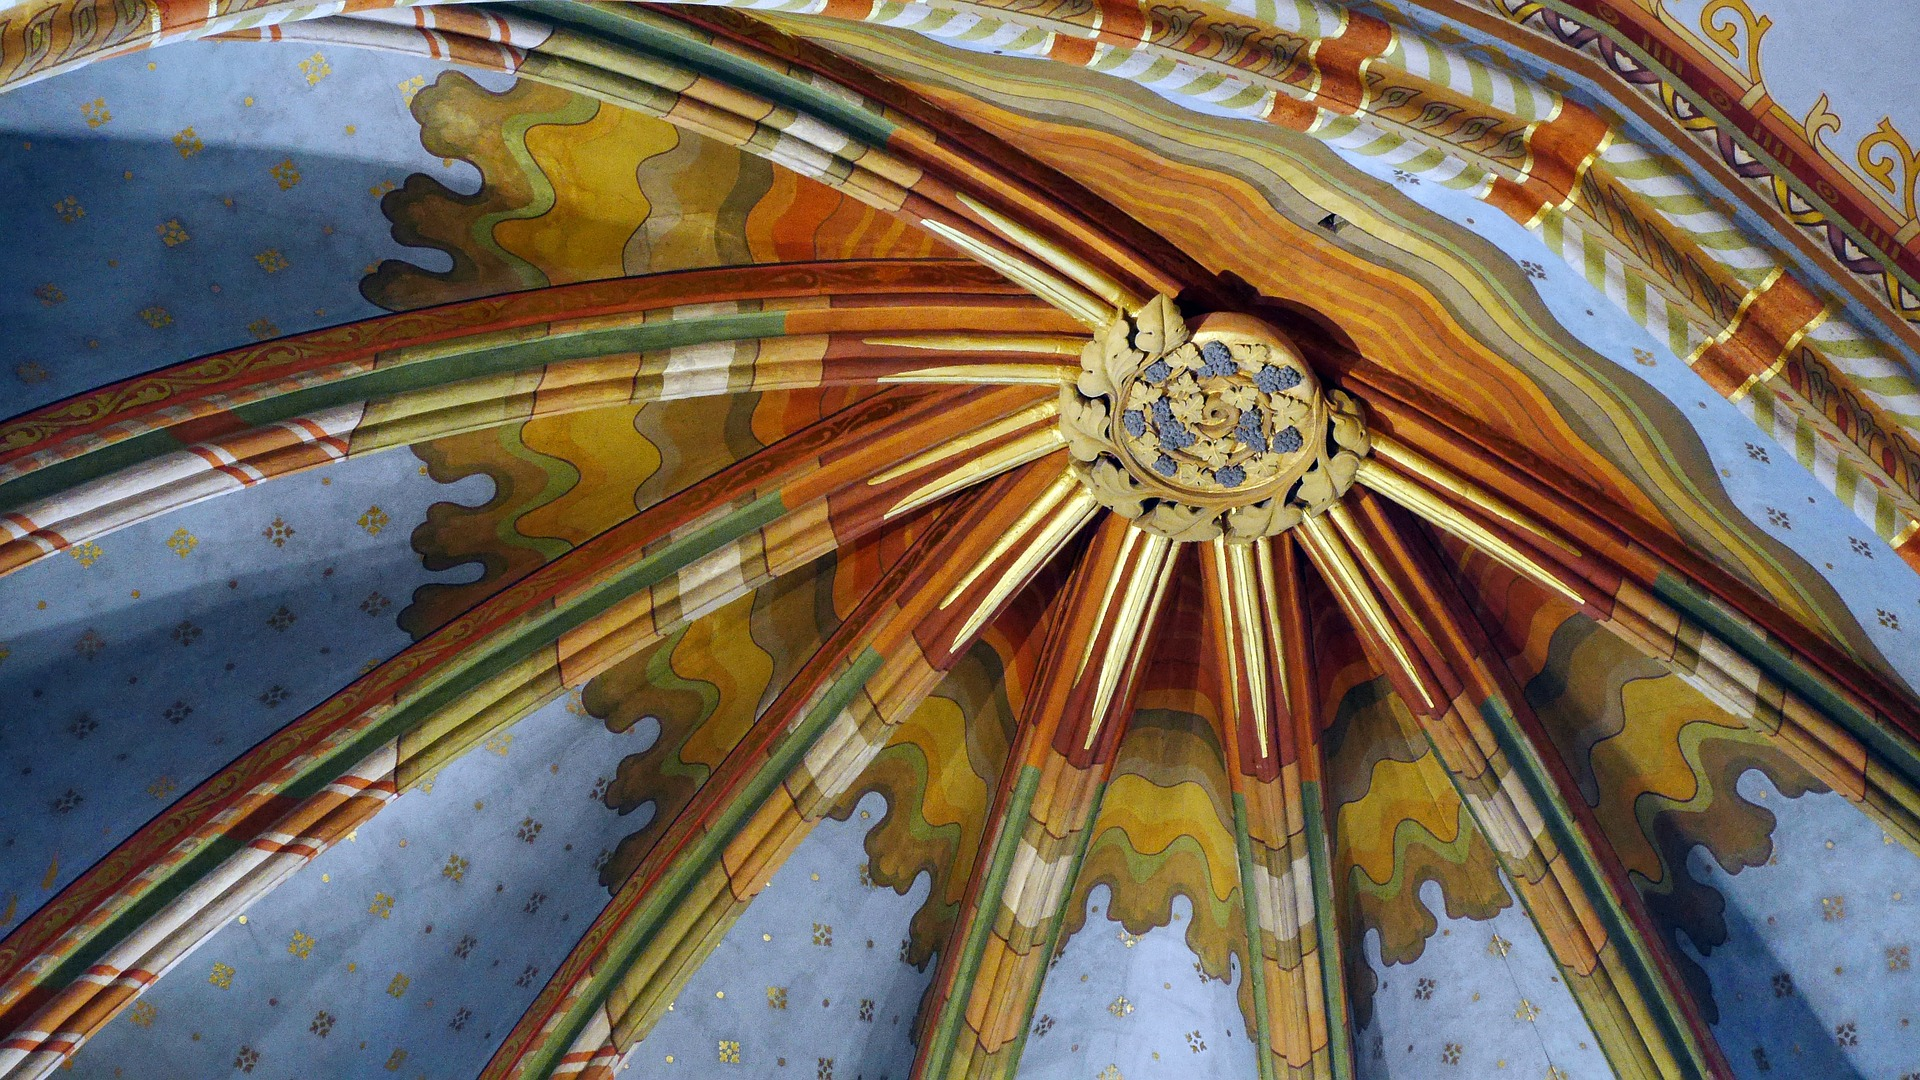 The ceiling at Matthias Church, Budapest, Hungary